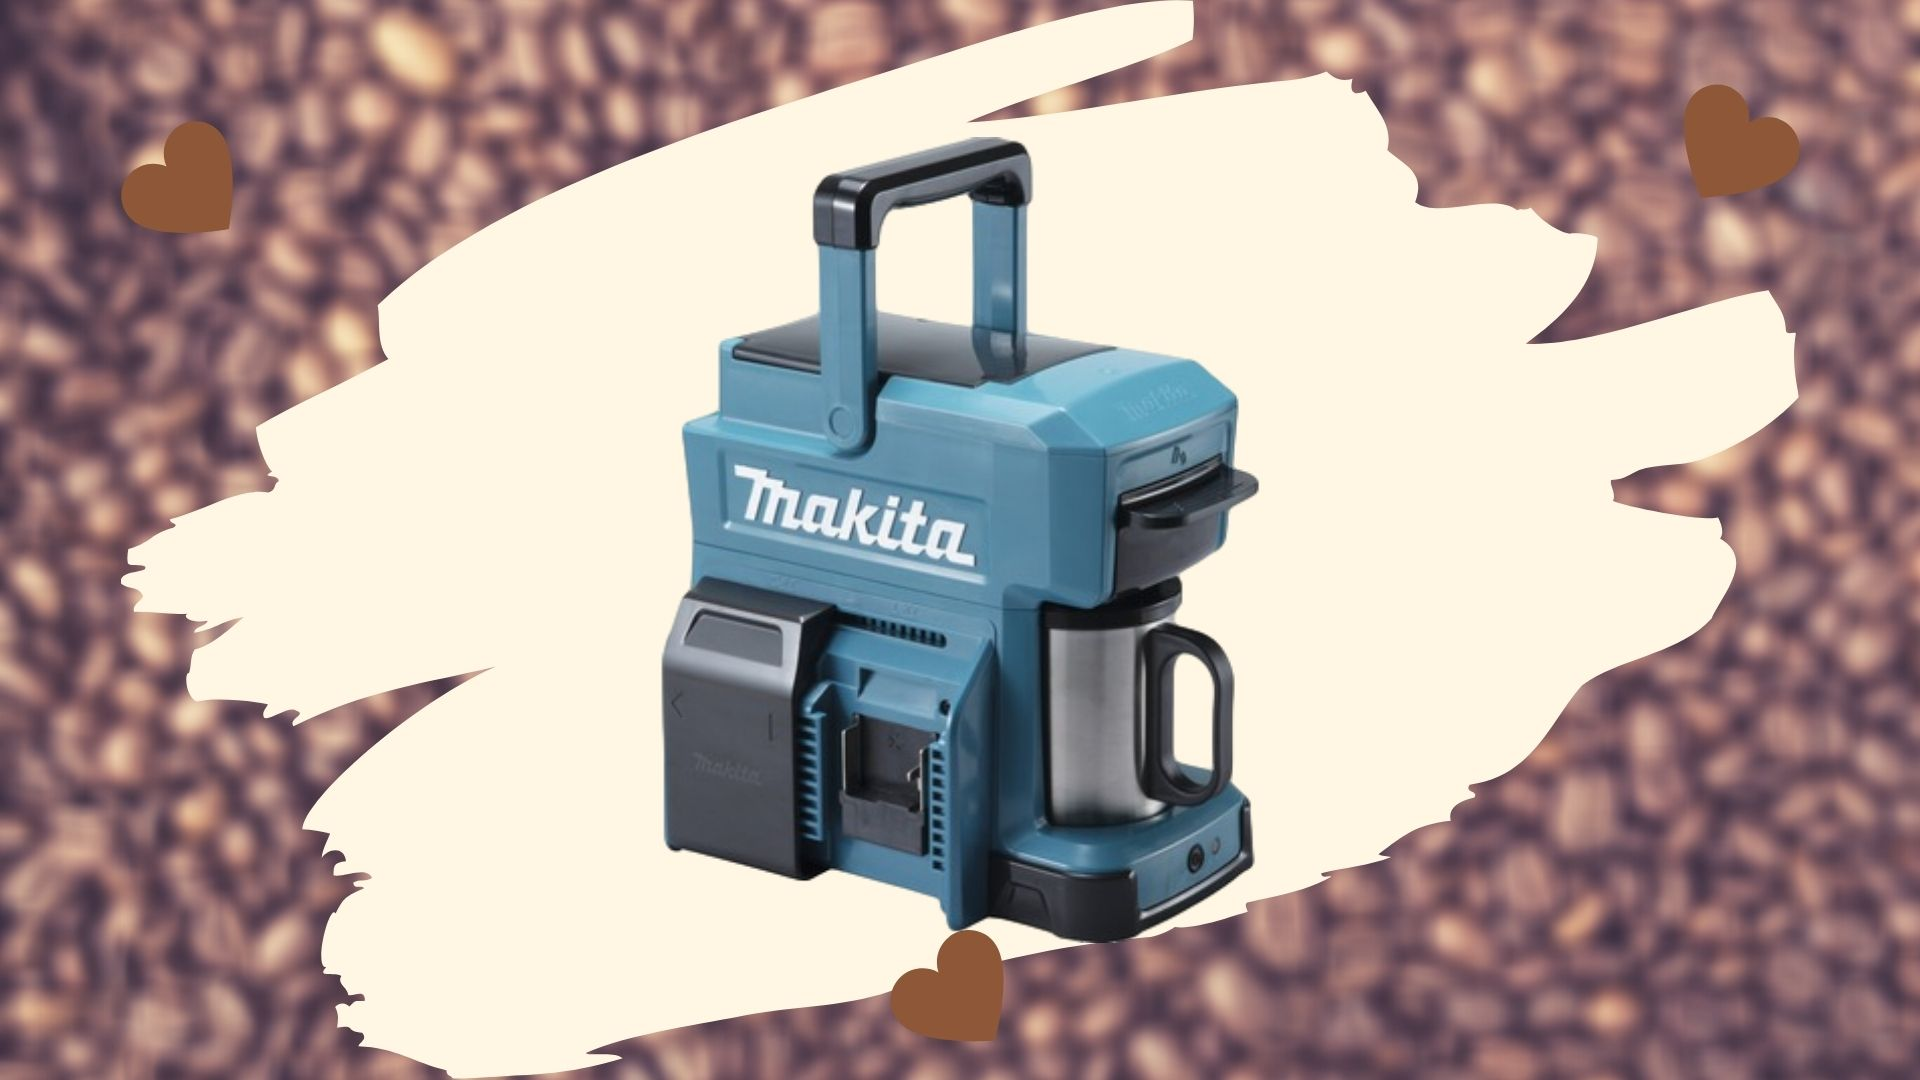 Makita DCM501Z Coffee Maker featured image